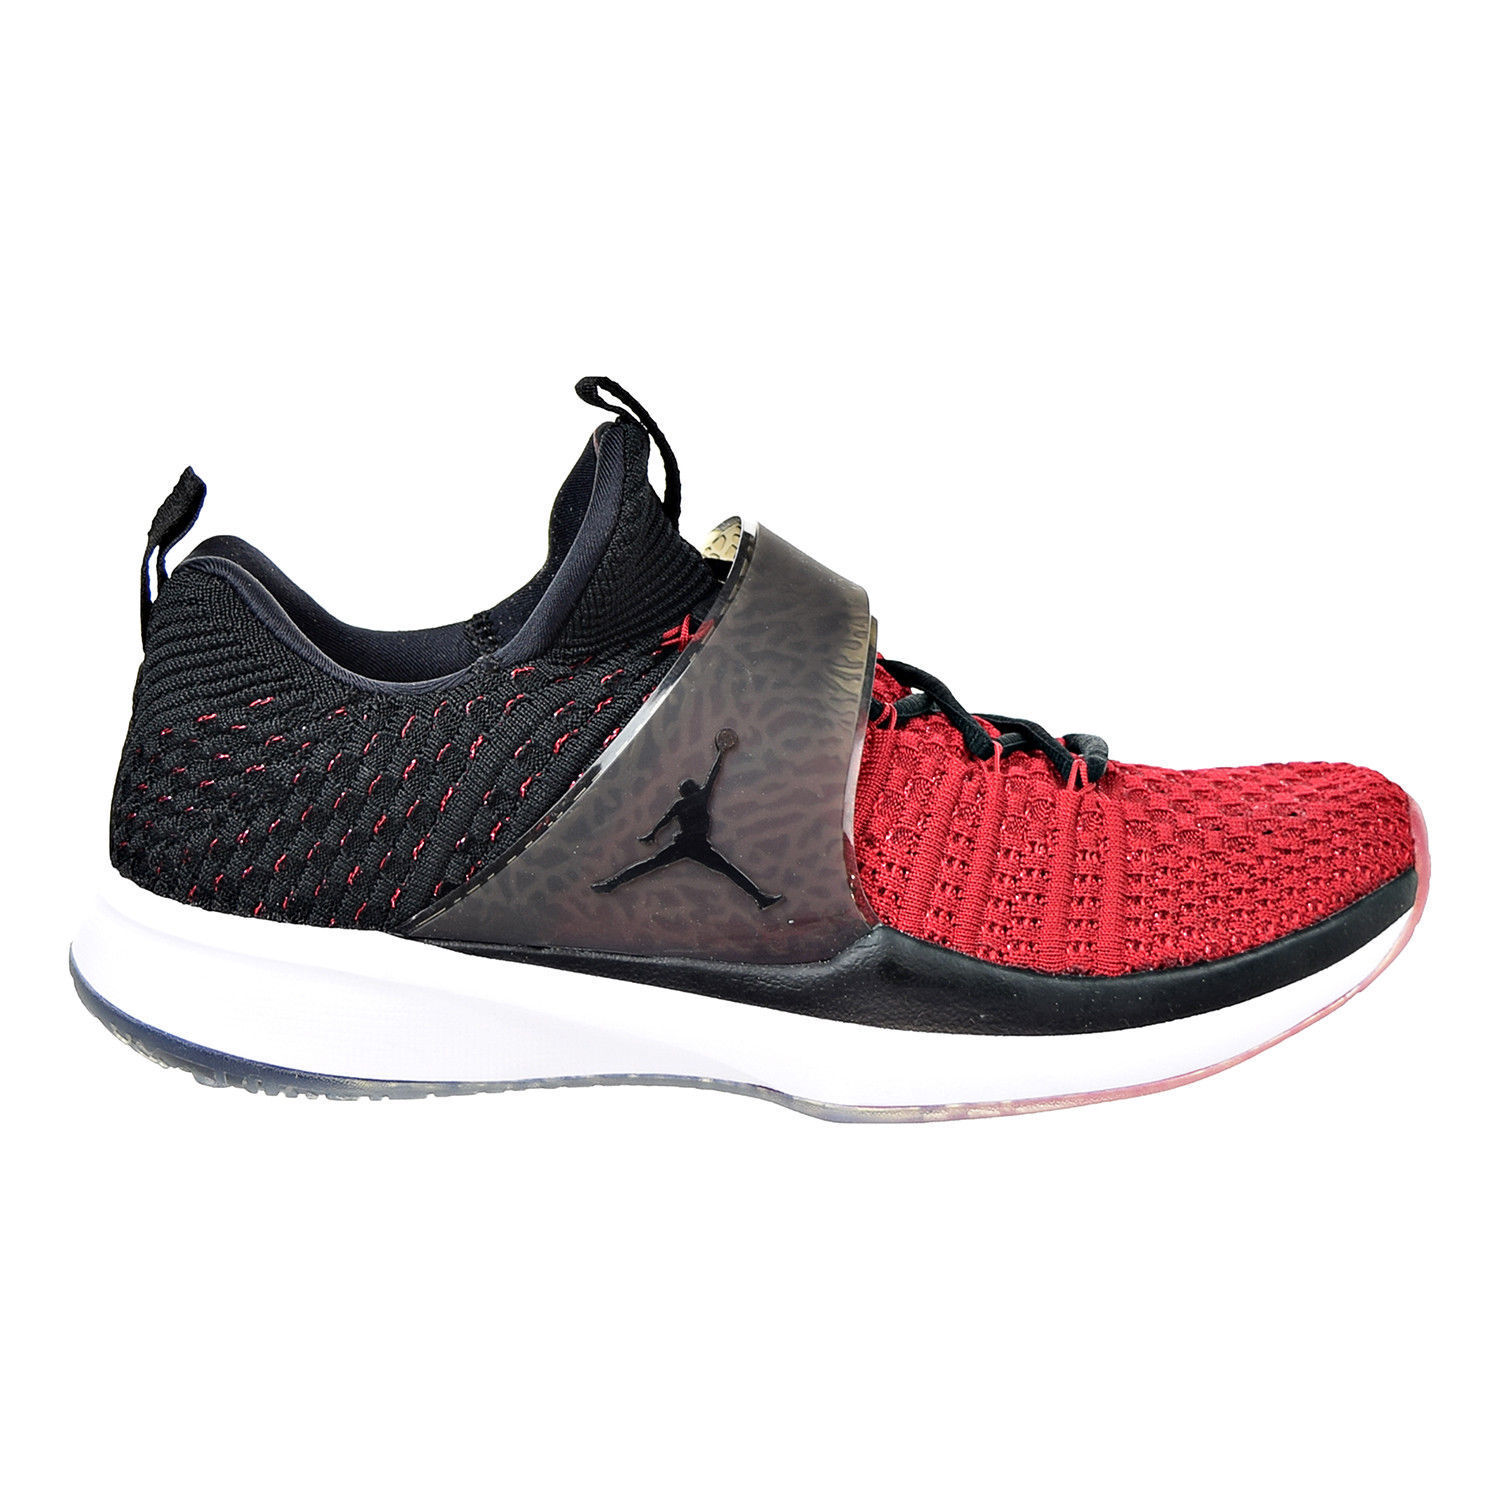 NEW NIKE JORDAN TRAINER 2 FLYKNIT SHOES LIMITED MENS SZ 14 921210 601 RARE SHOE